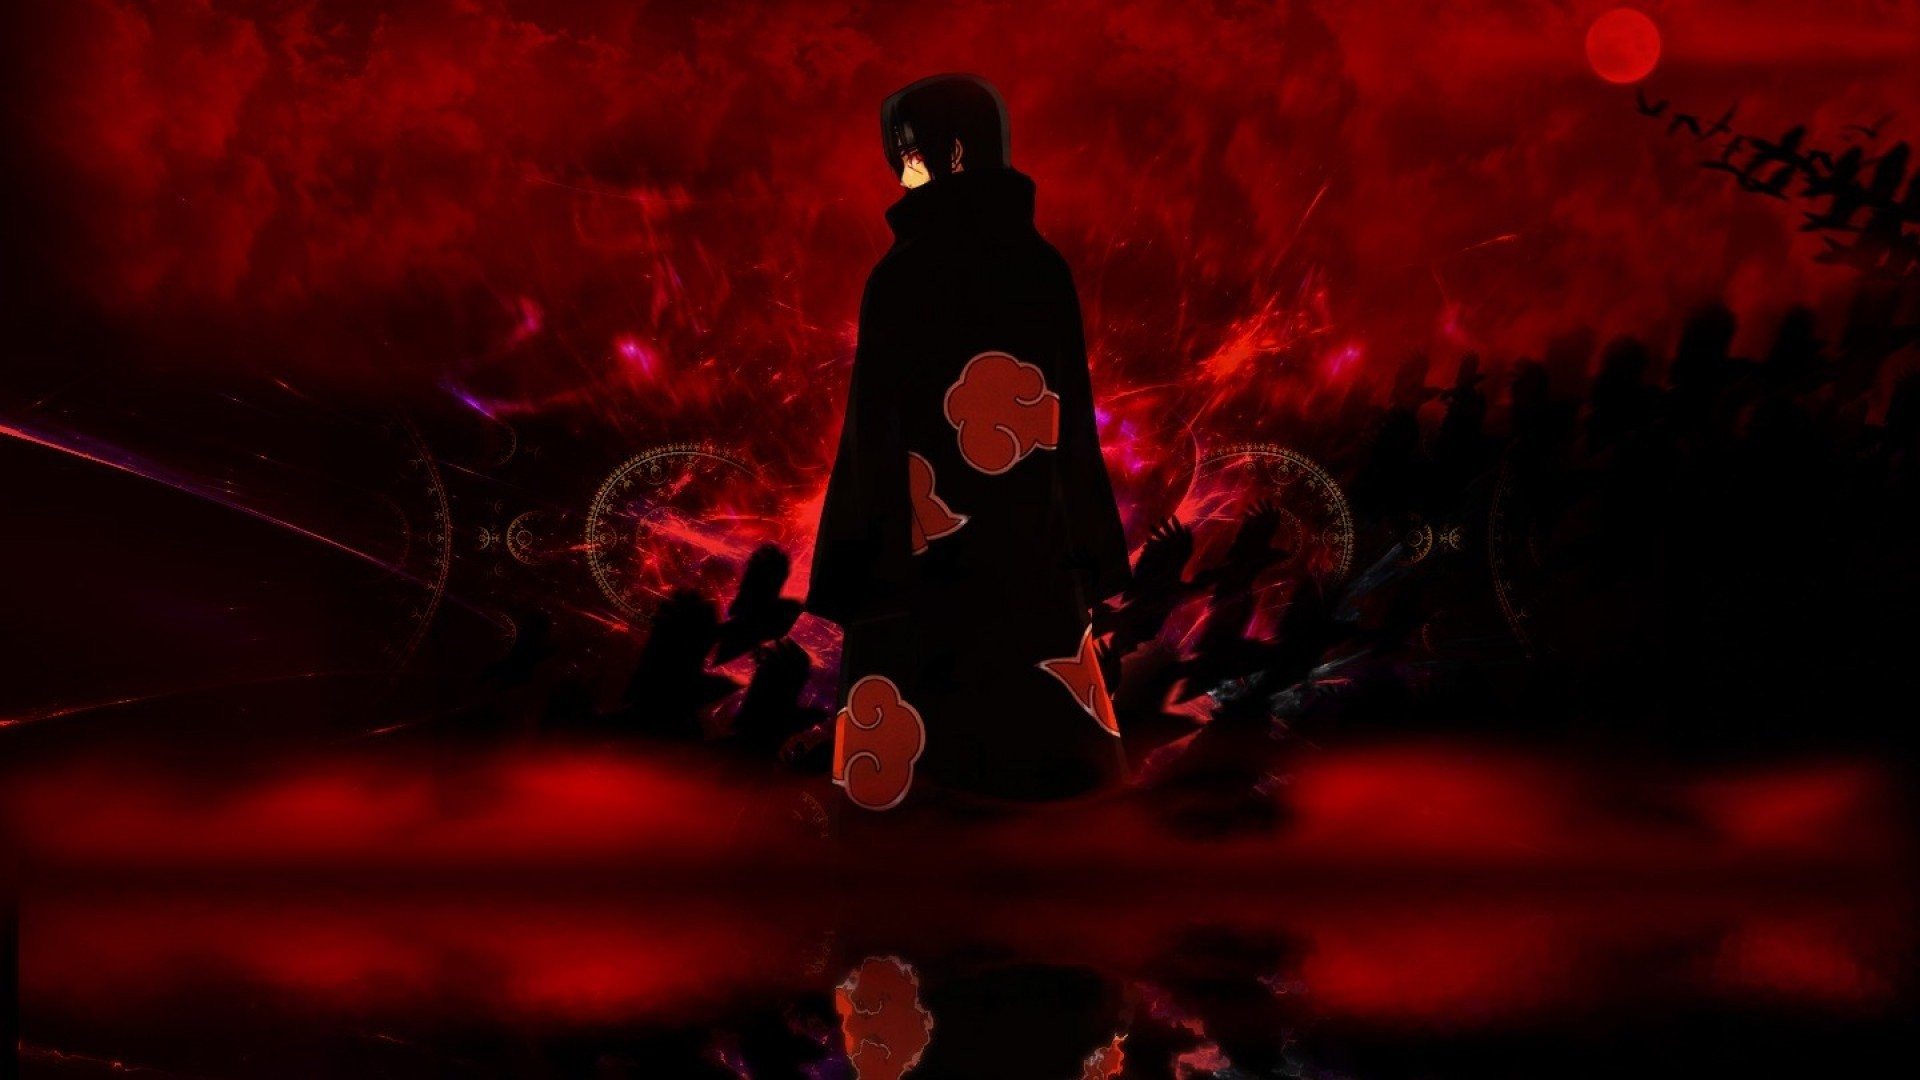 Sharingan Background Posted By Ethan Sellers